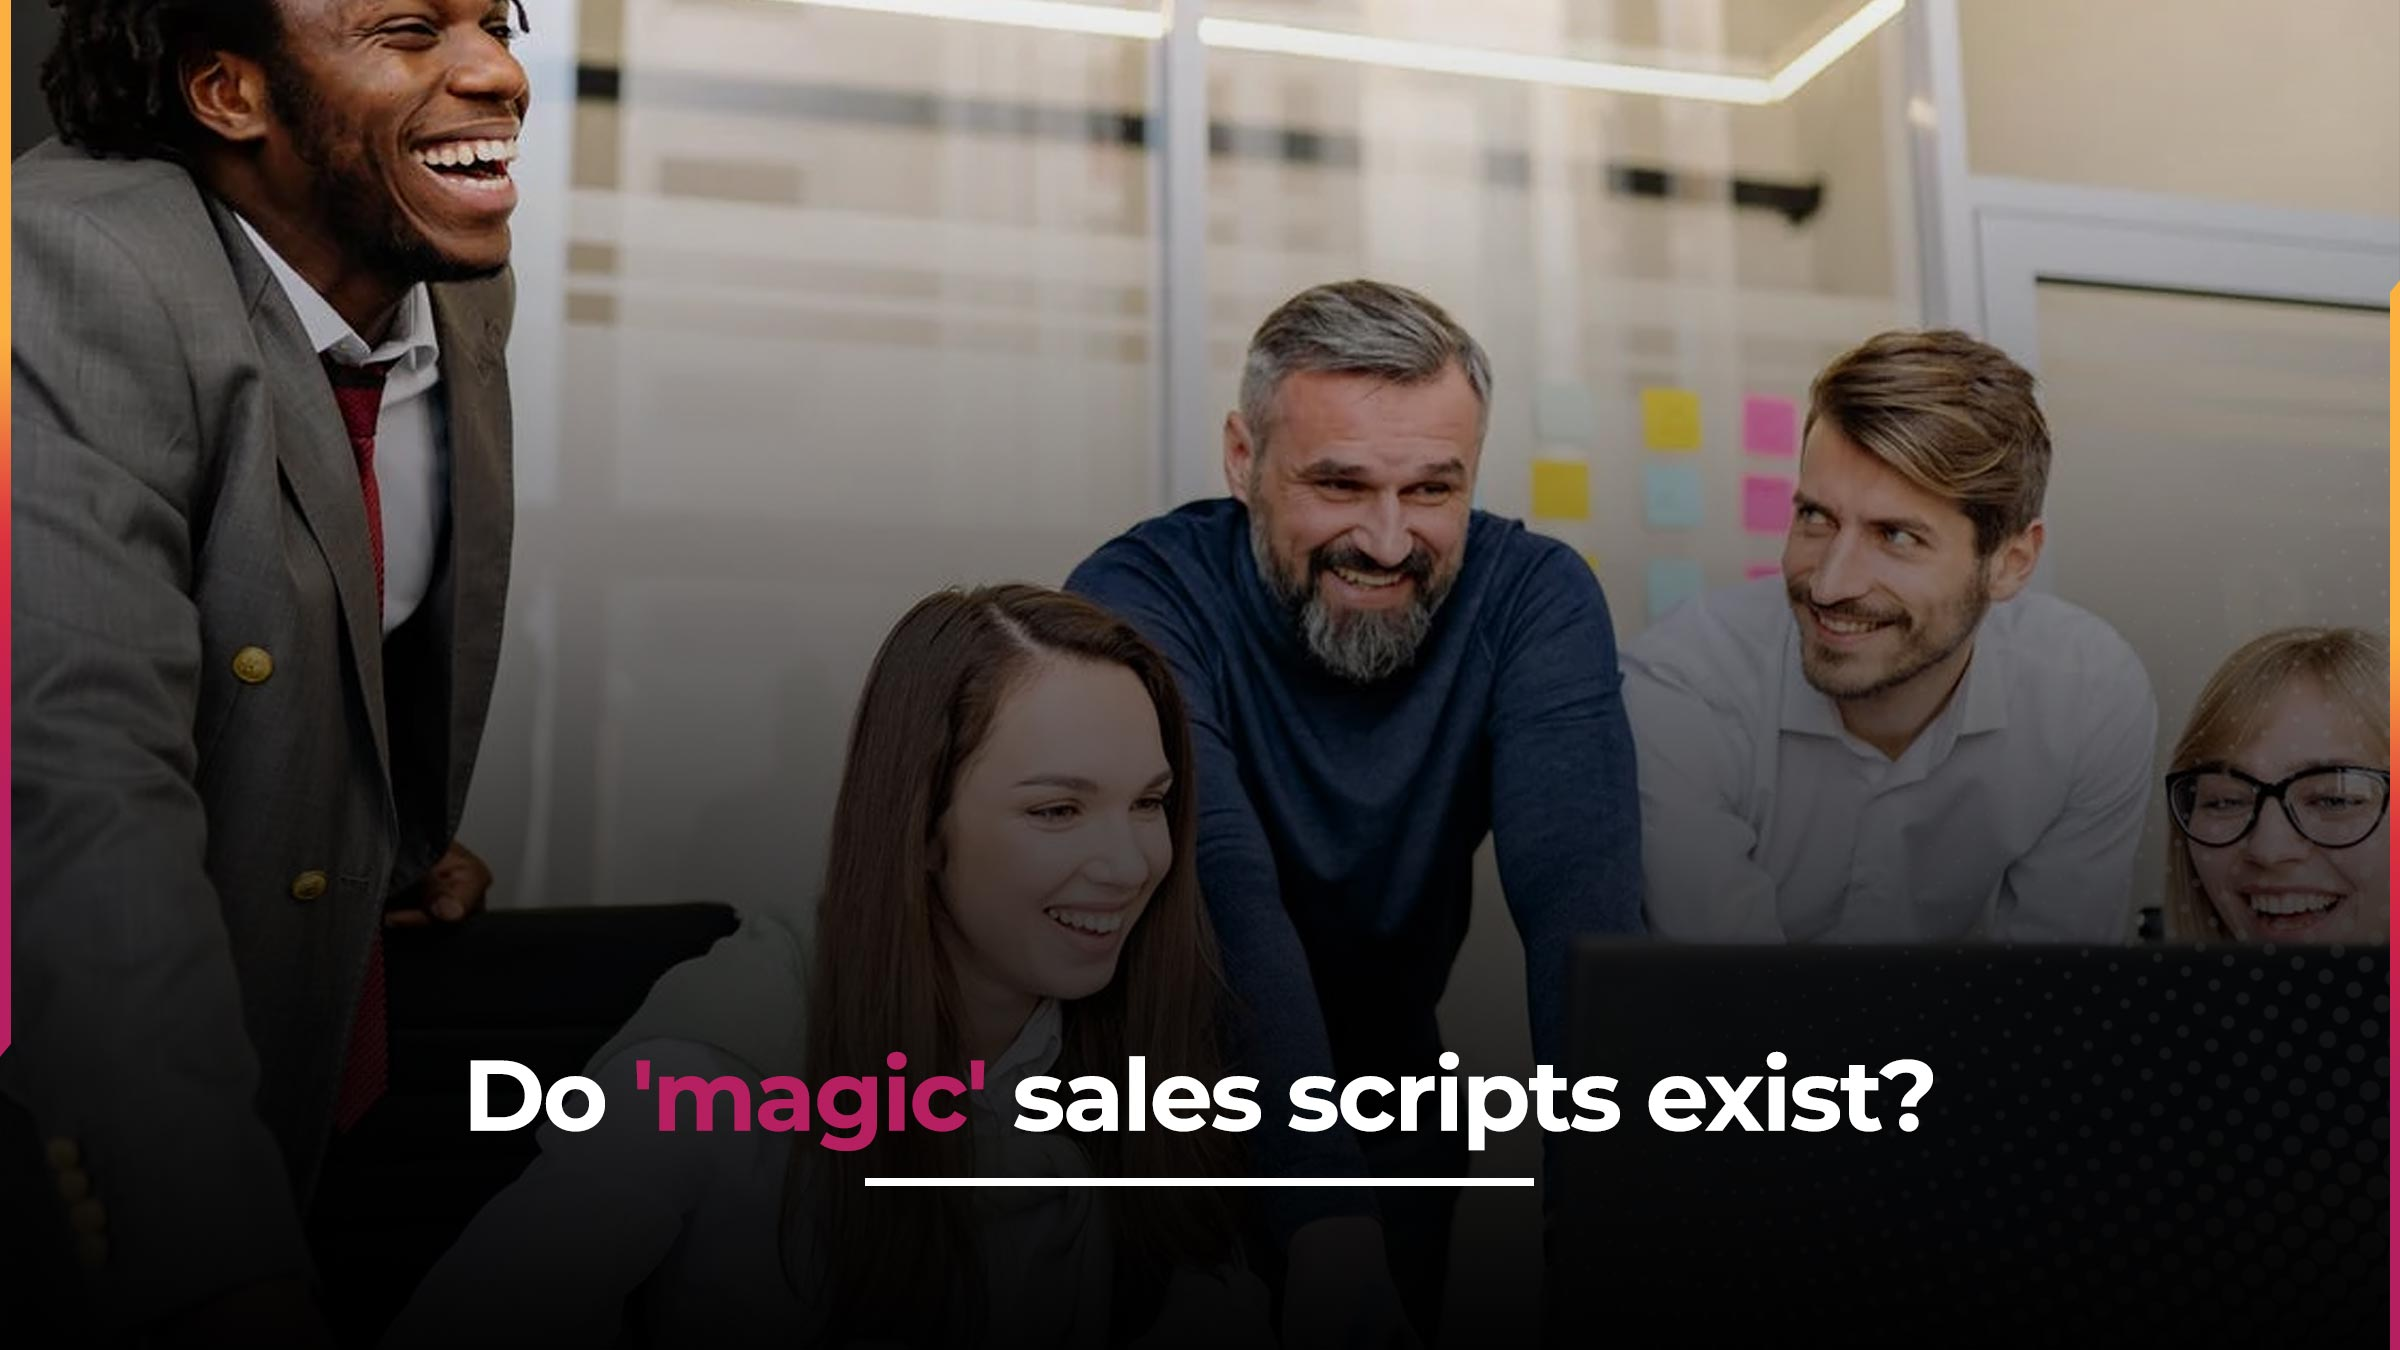 How To Establish Rapport With Sales Scripts That Work